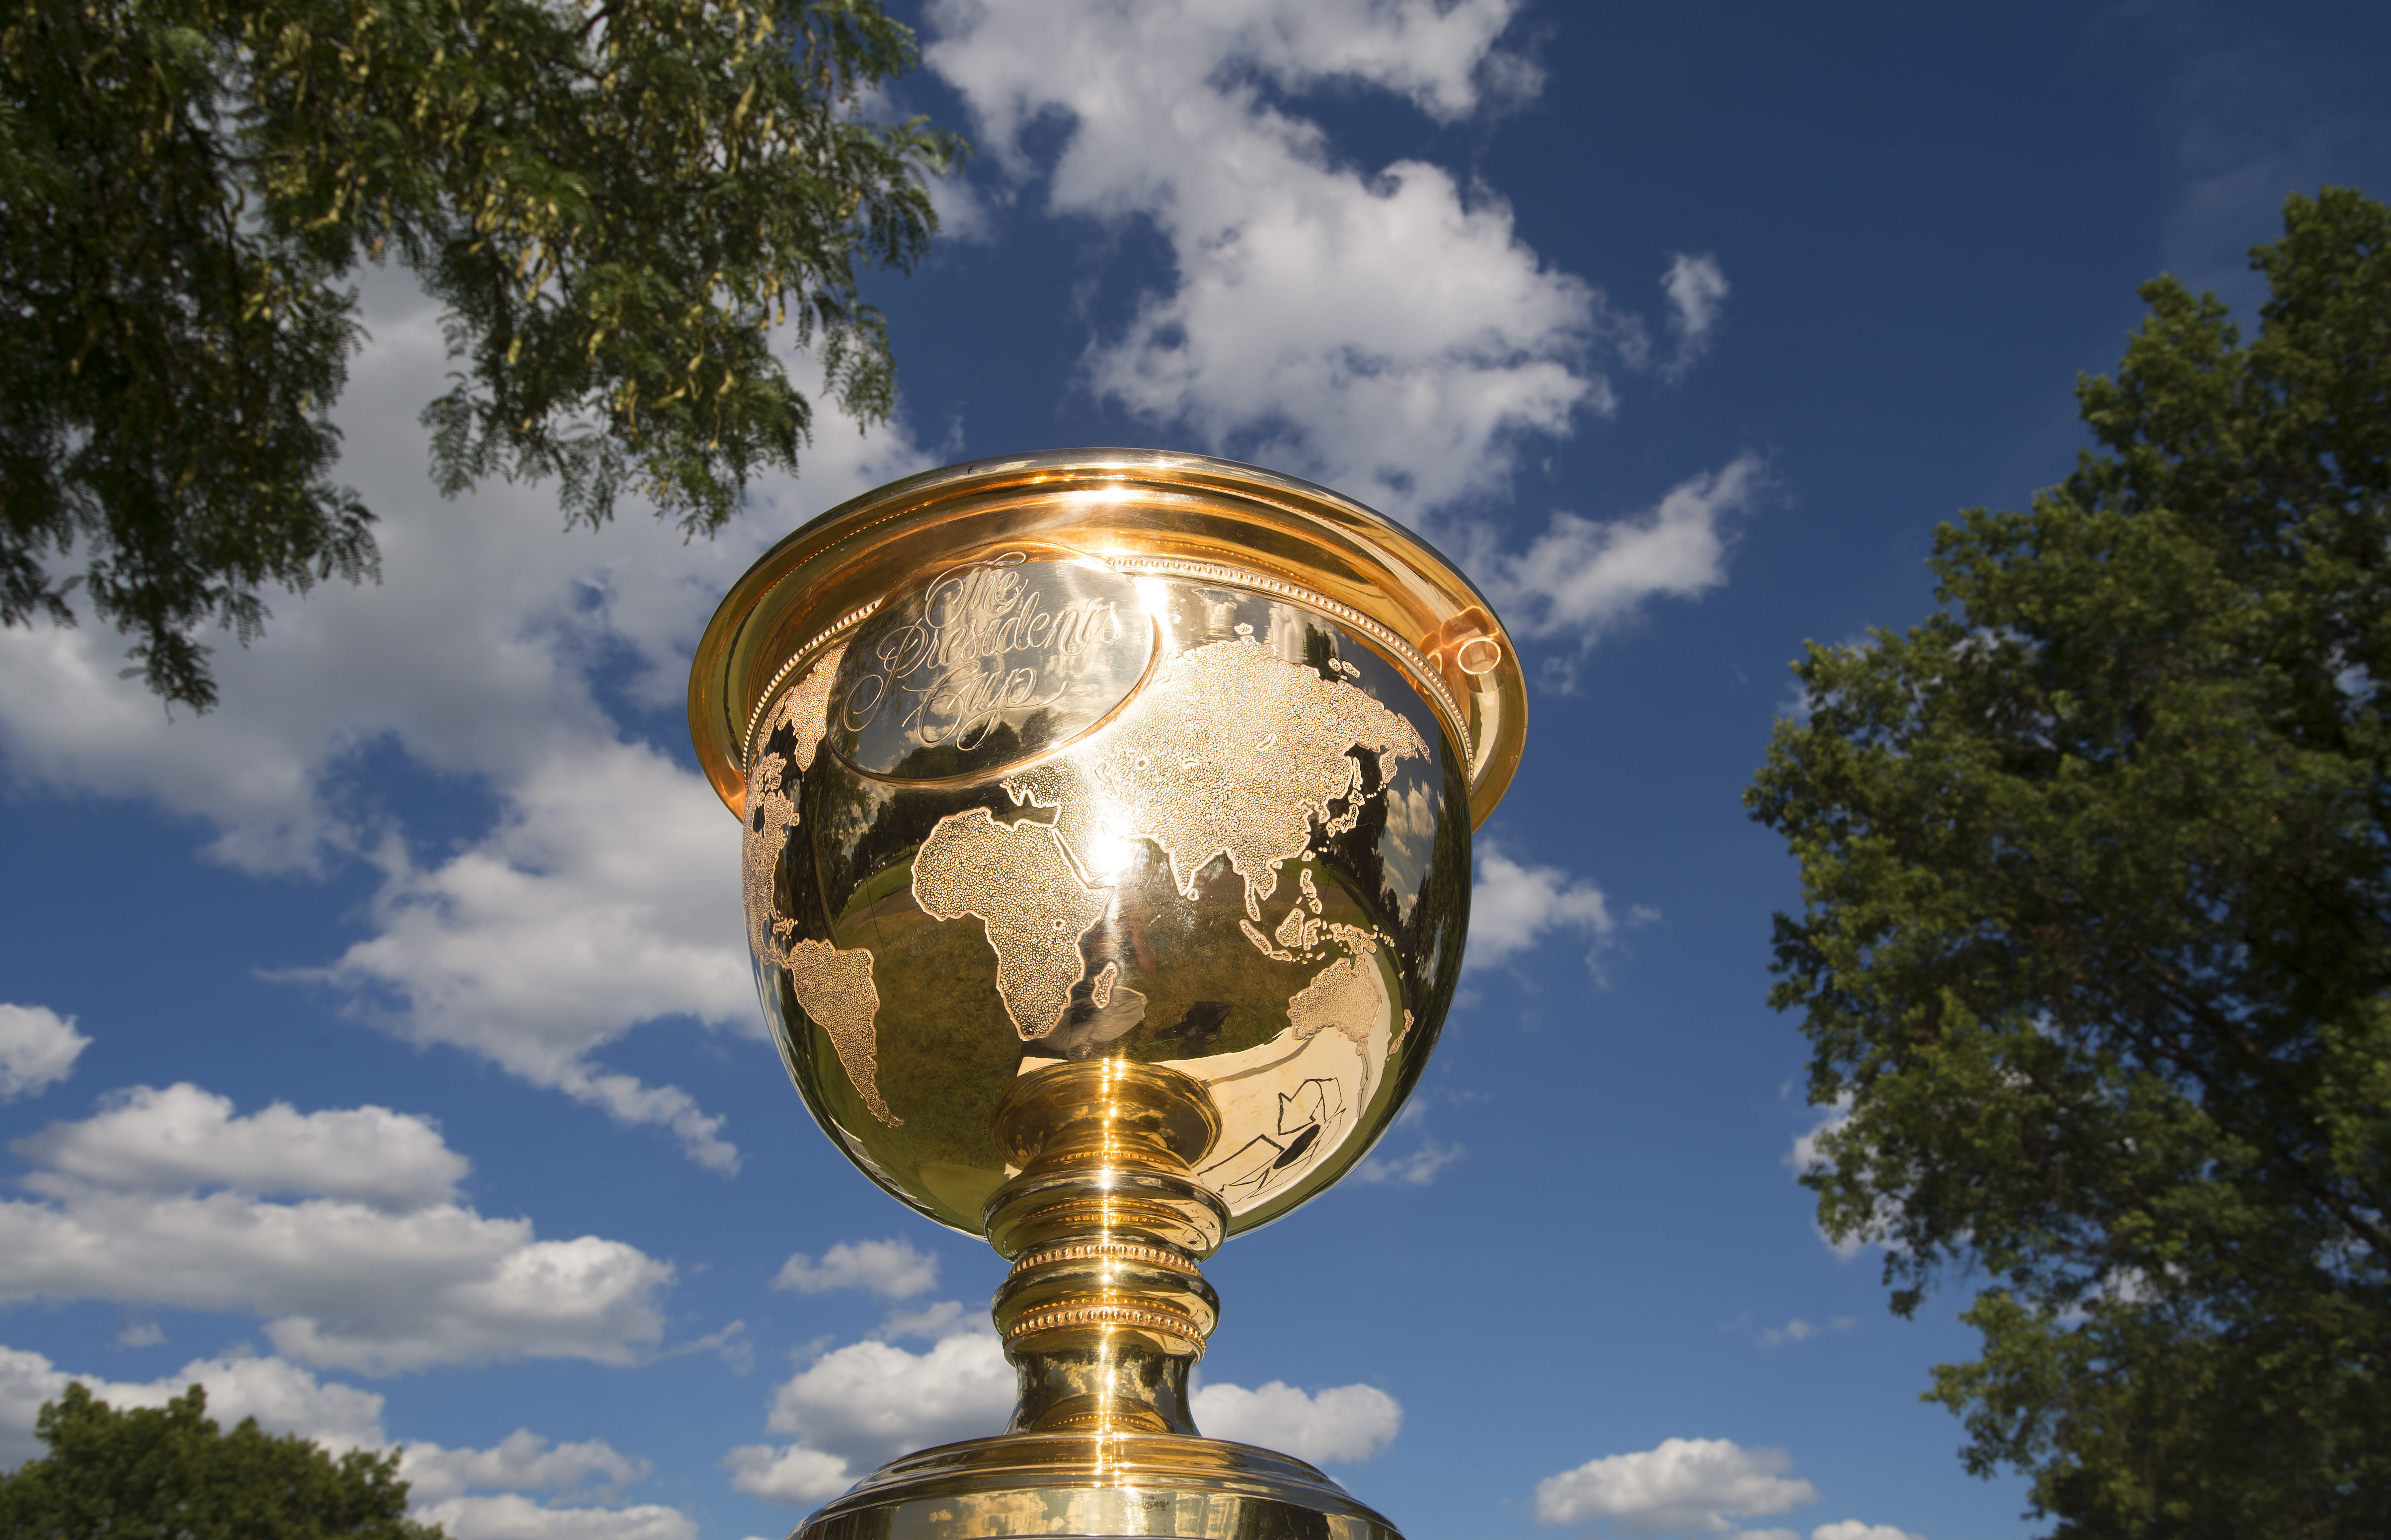 The U.S. and International teams will battle for the Presidents Cup in South Korea this October.